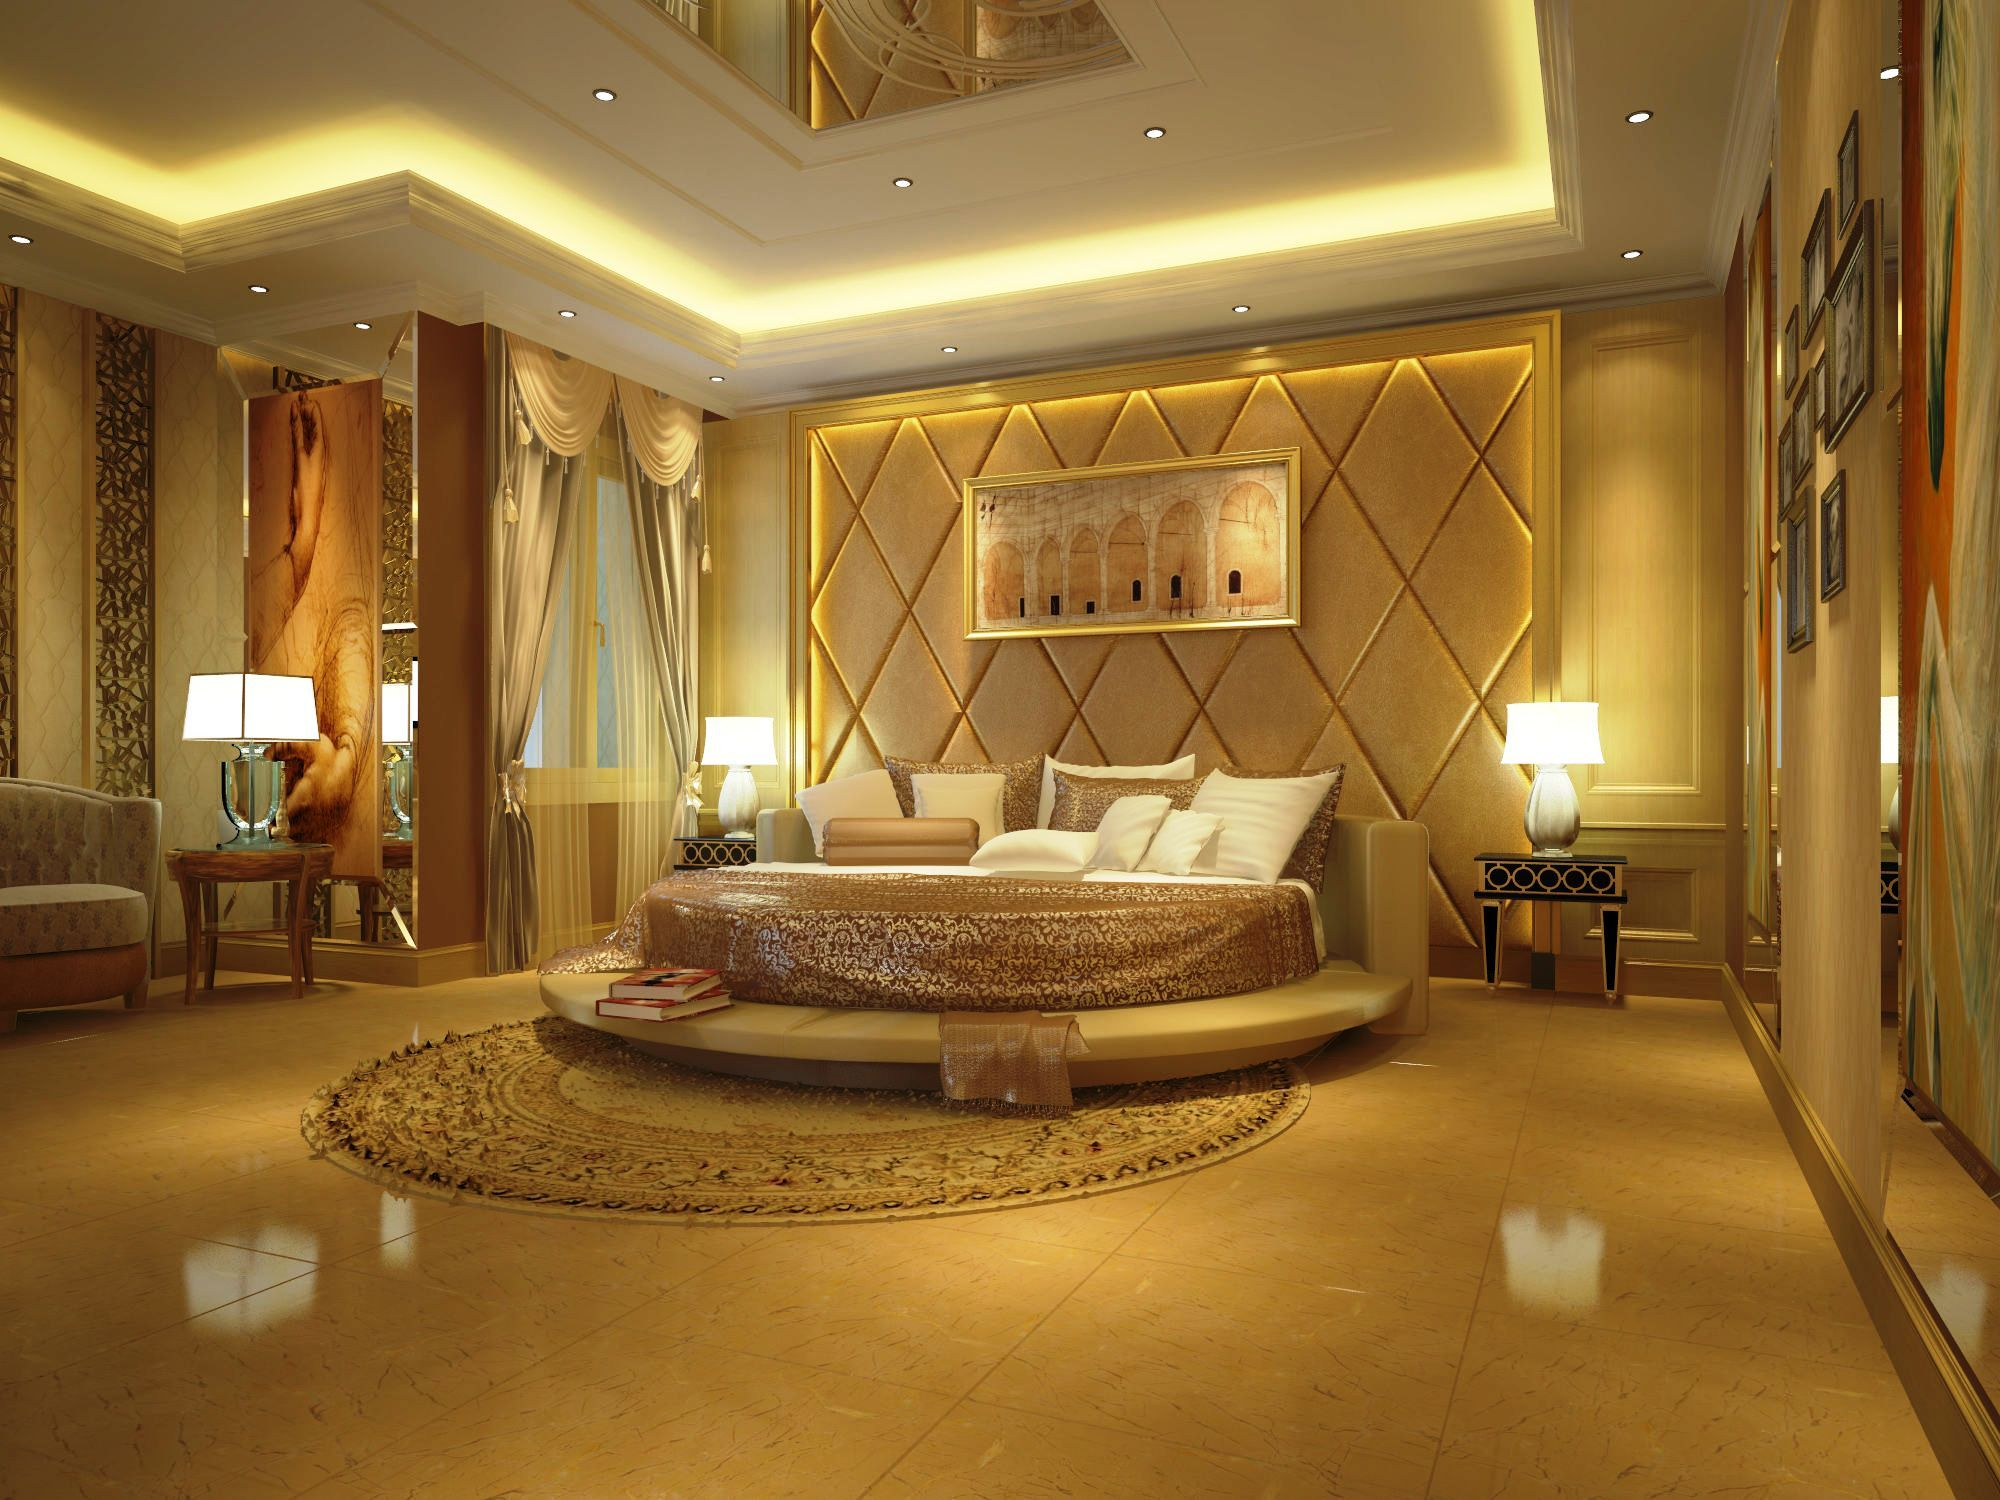 Luxury Bedrooms Interior Design New A Master Bedroom Fit For A King & Queendescription From Inspiration Design